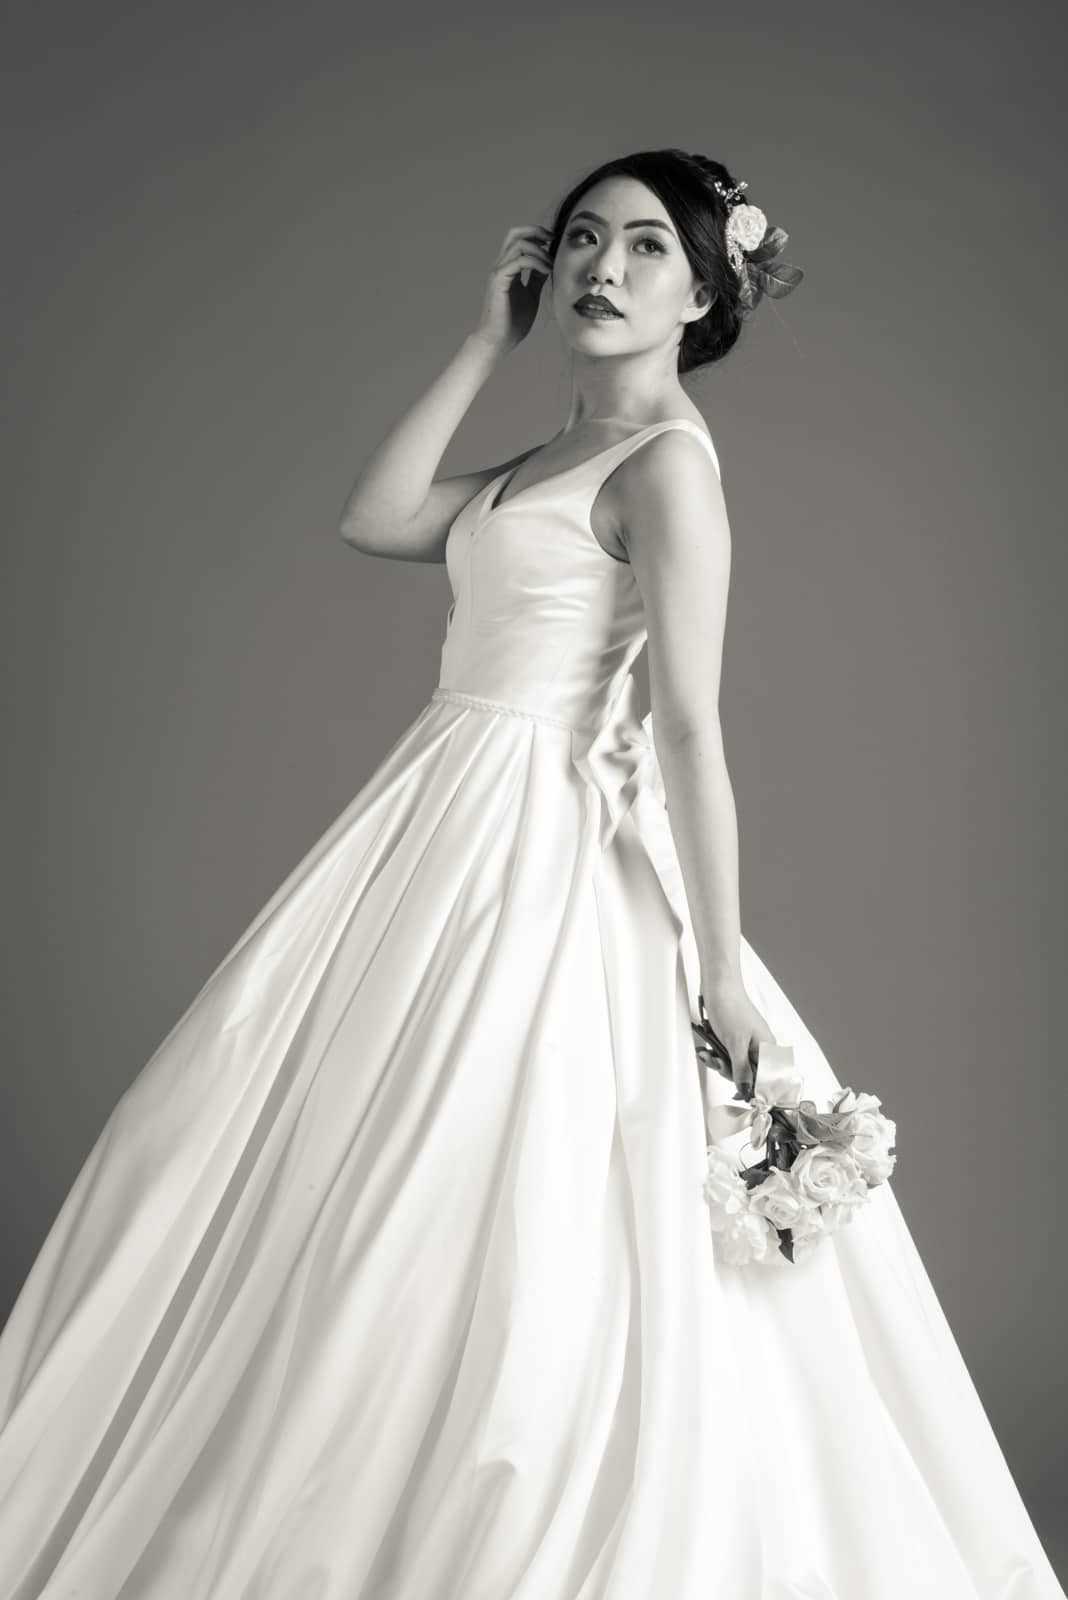 Anne May modelling a gown by Karentino Bridal, for their website